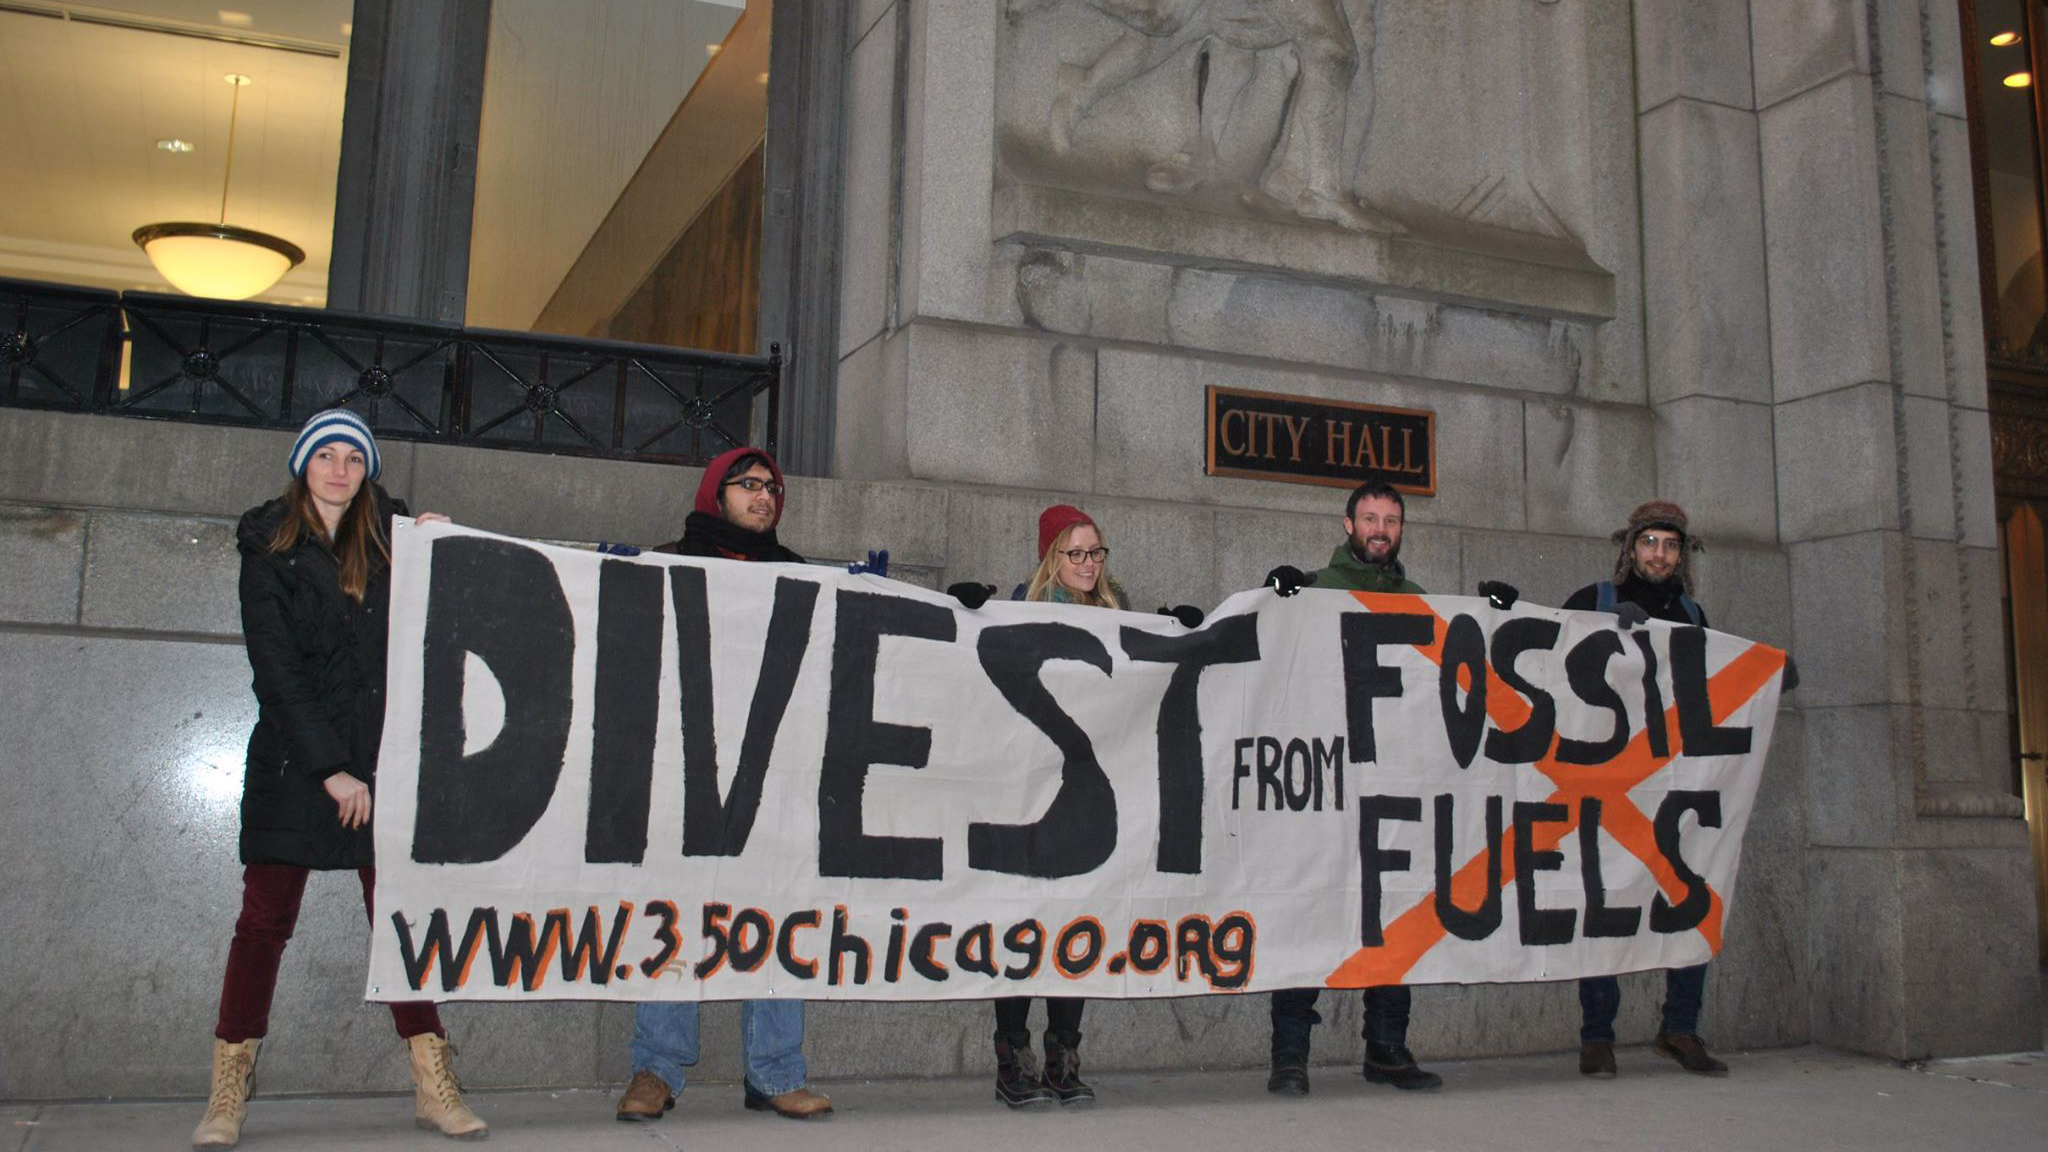 Activists from 350 Chicago protest at City Hall on Global Divestment Day, Feb. 14, 2015. (Courtesy of Melissa Brice)